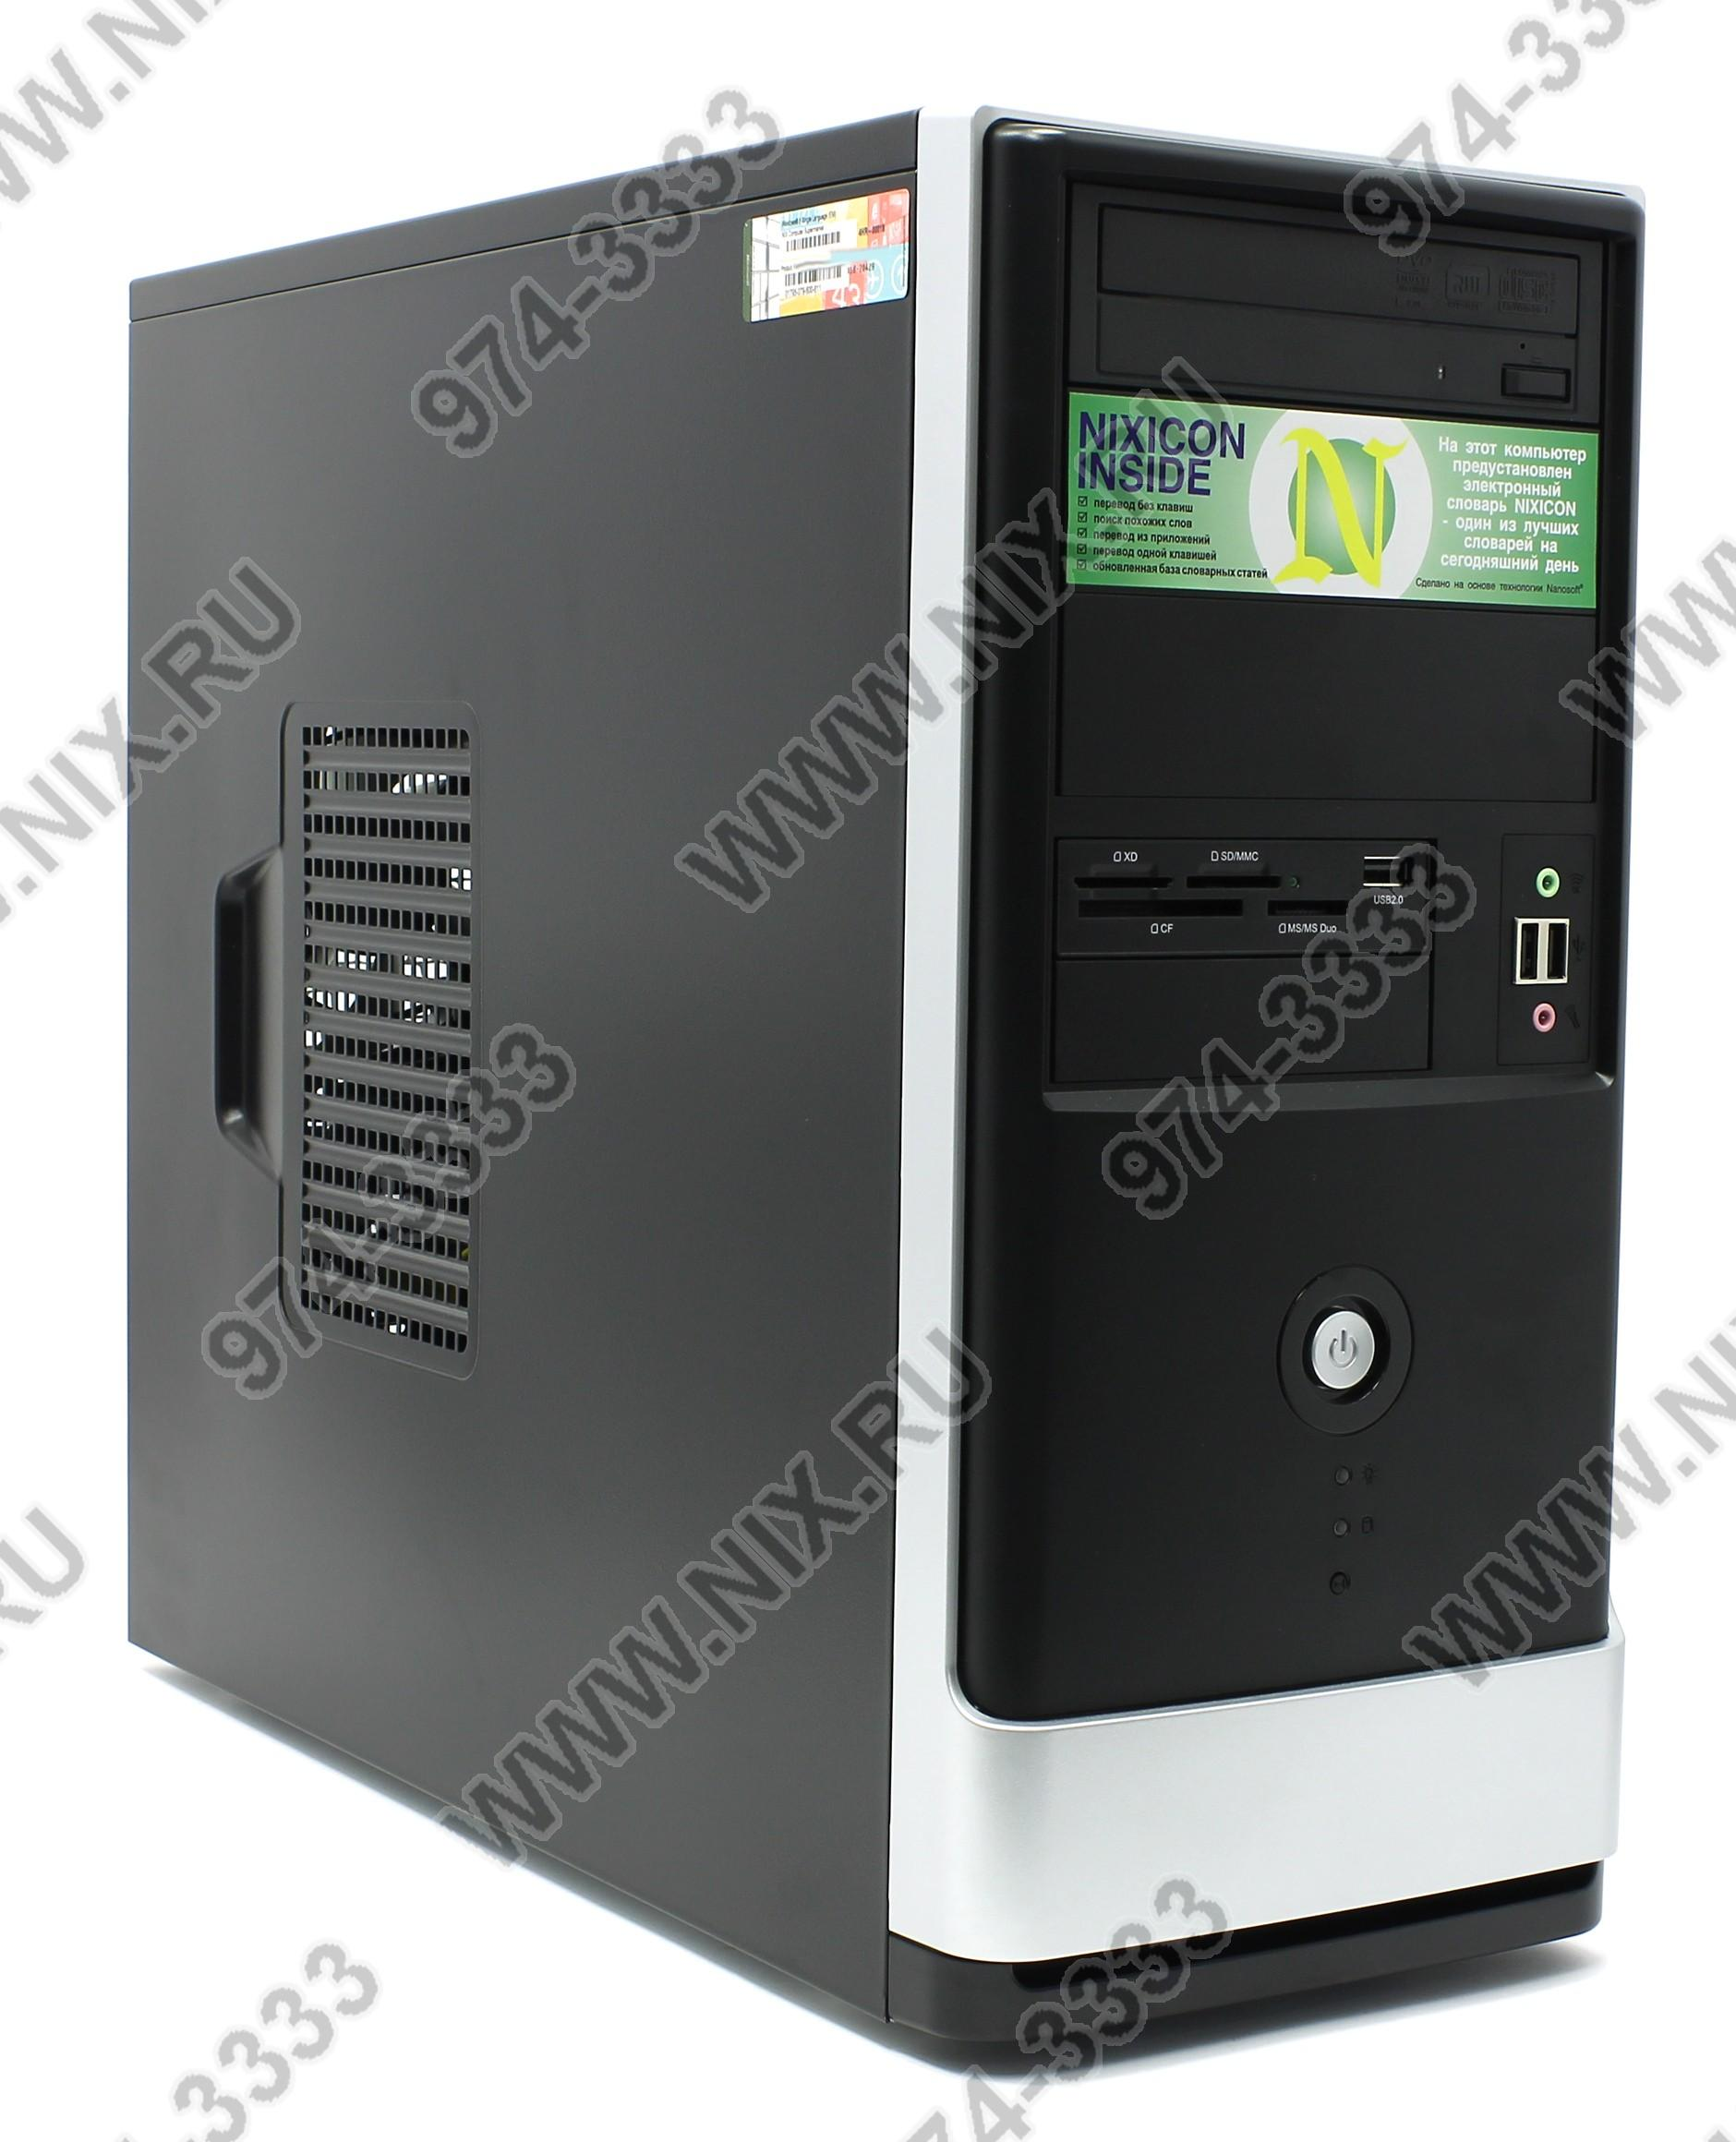 Пэвм m5000mba (m530klga): a8 3870k/ 4 гб/ 1 тб/ 2 гб geforce gtx650/ dvdrw/ win7 premium